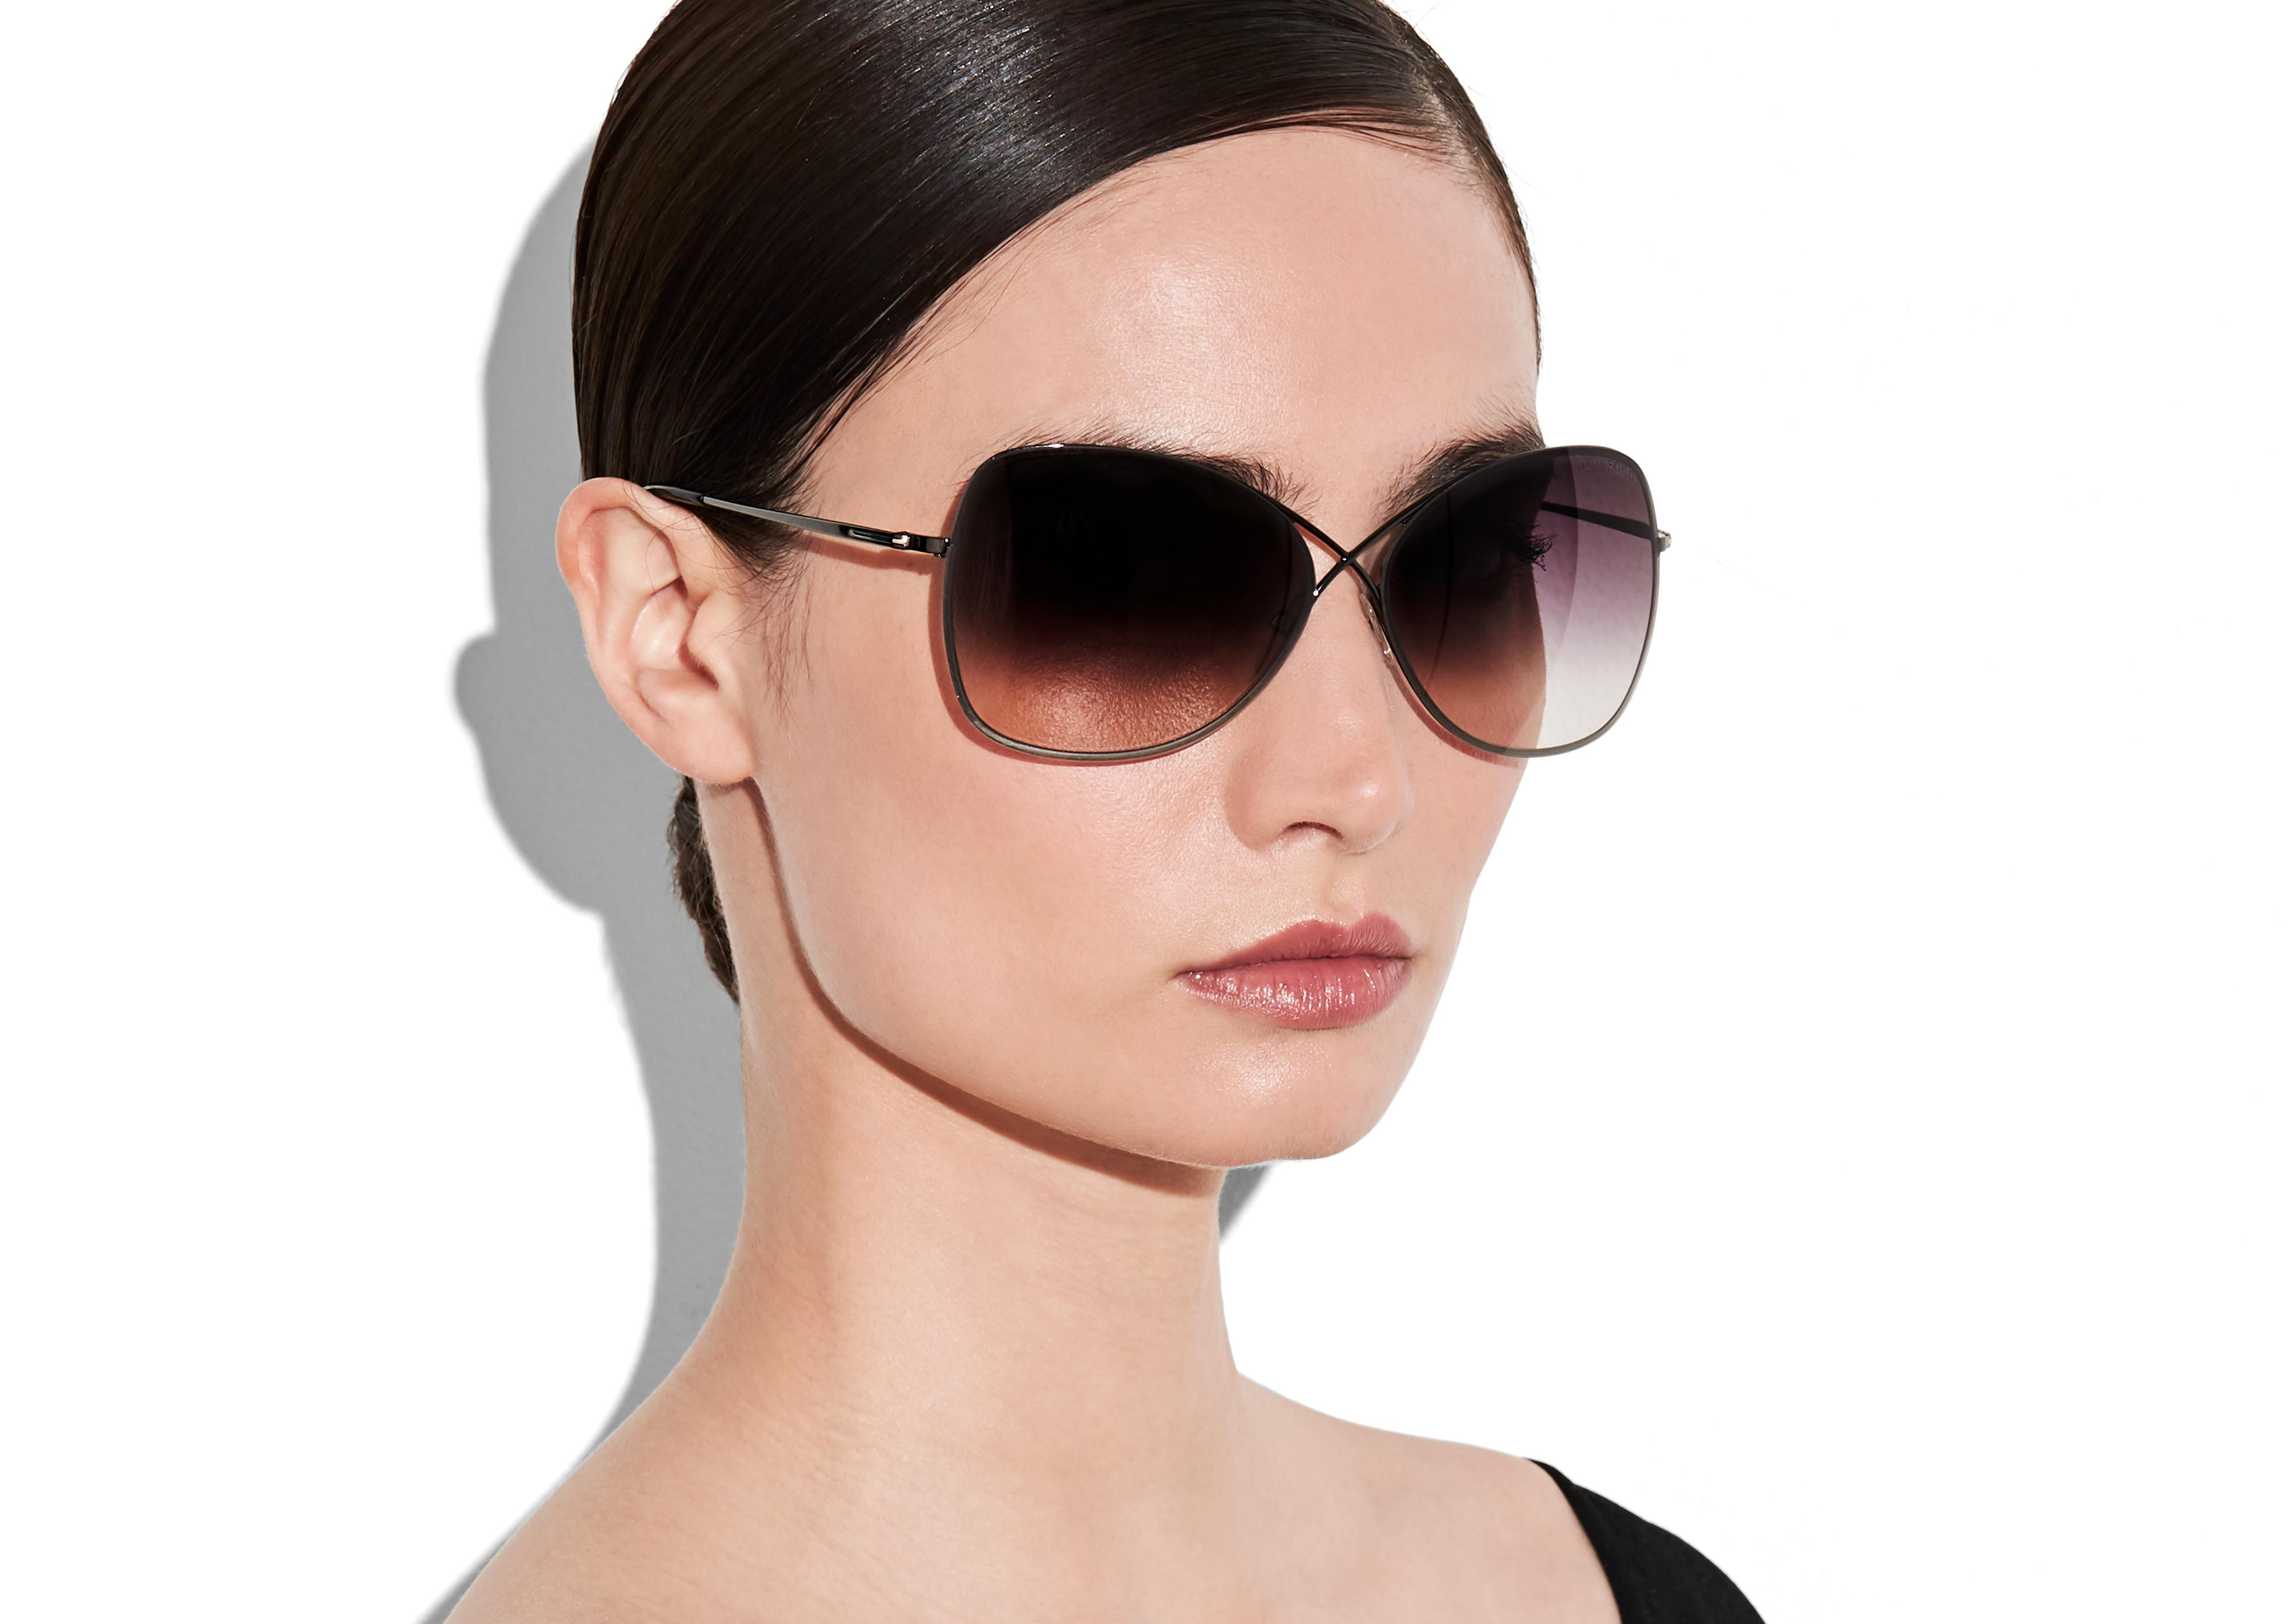 Details about  /NEW TOM FORD TF253 50Z PURPLE AUTHENTIC SUNGLASSES 63-10-135